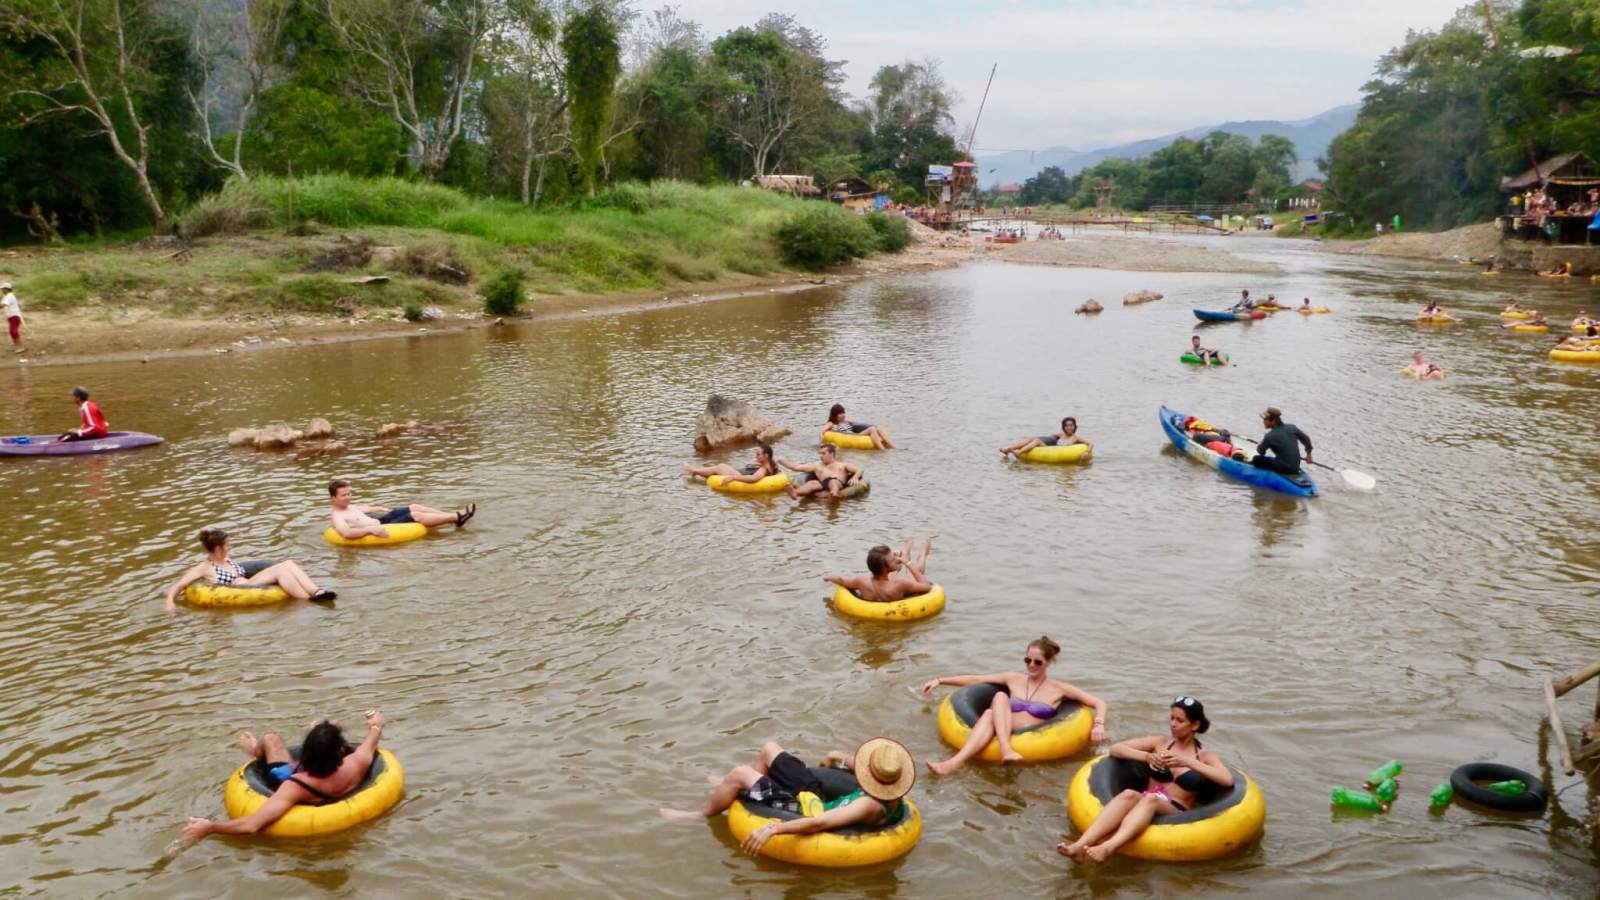 Tubers in the Nam Song River